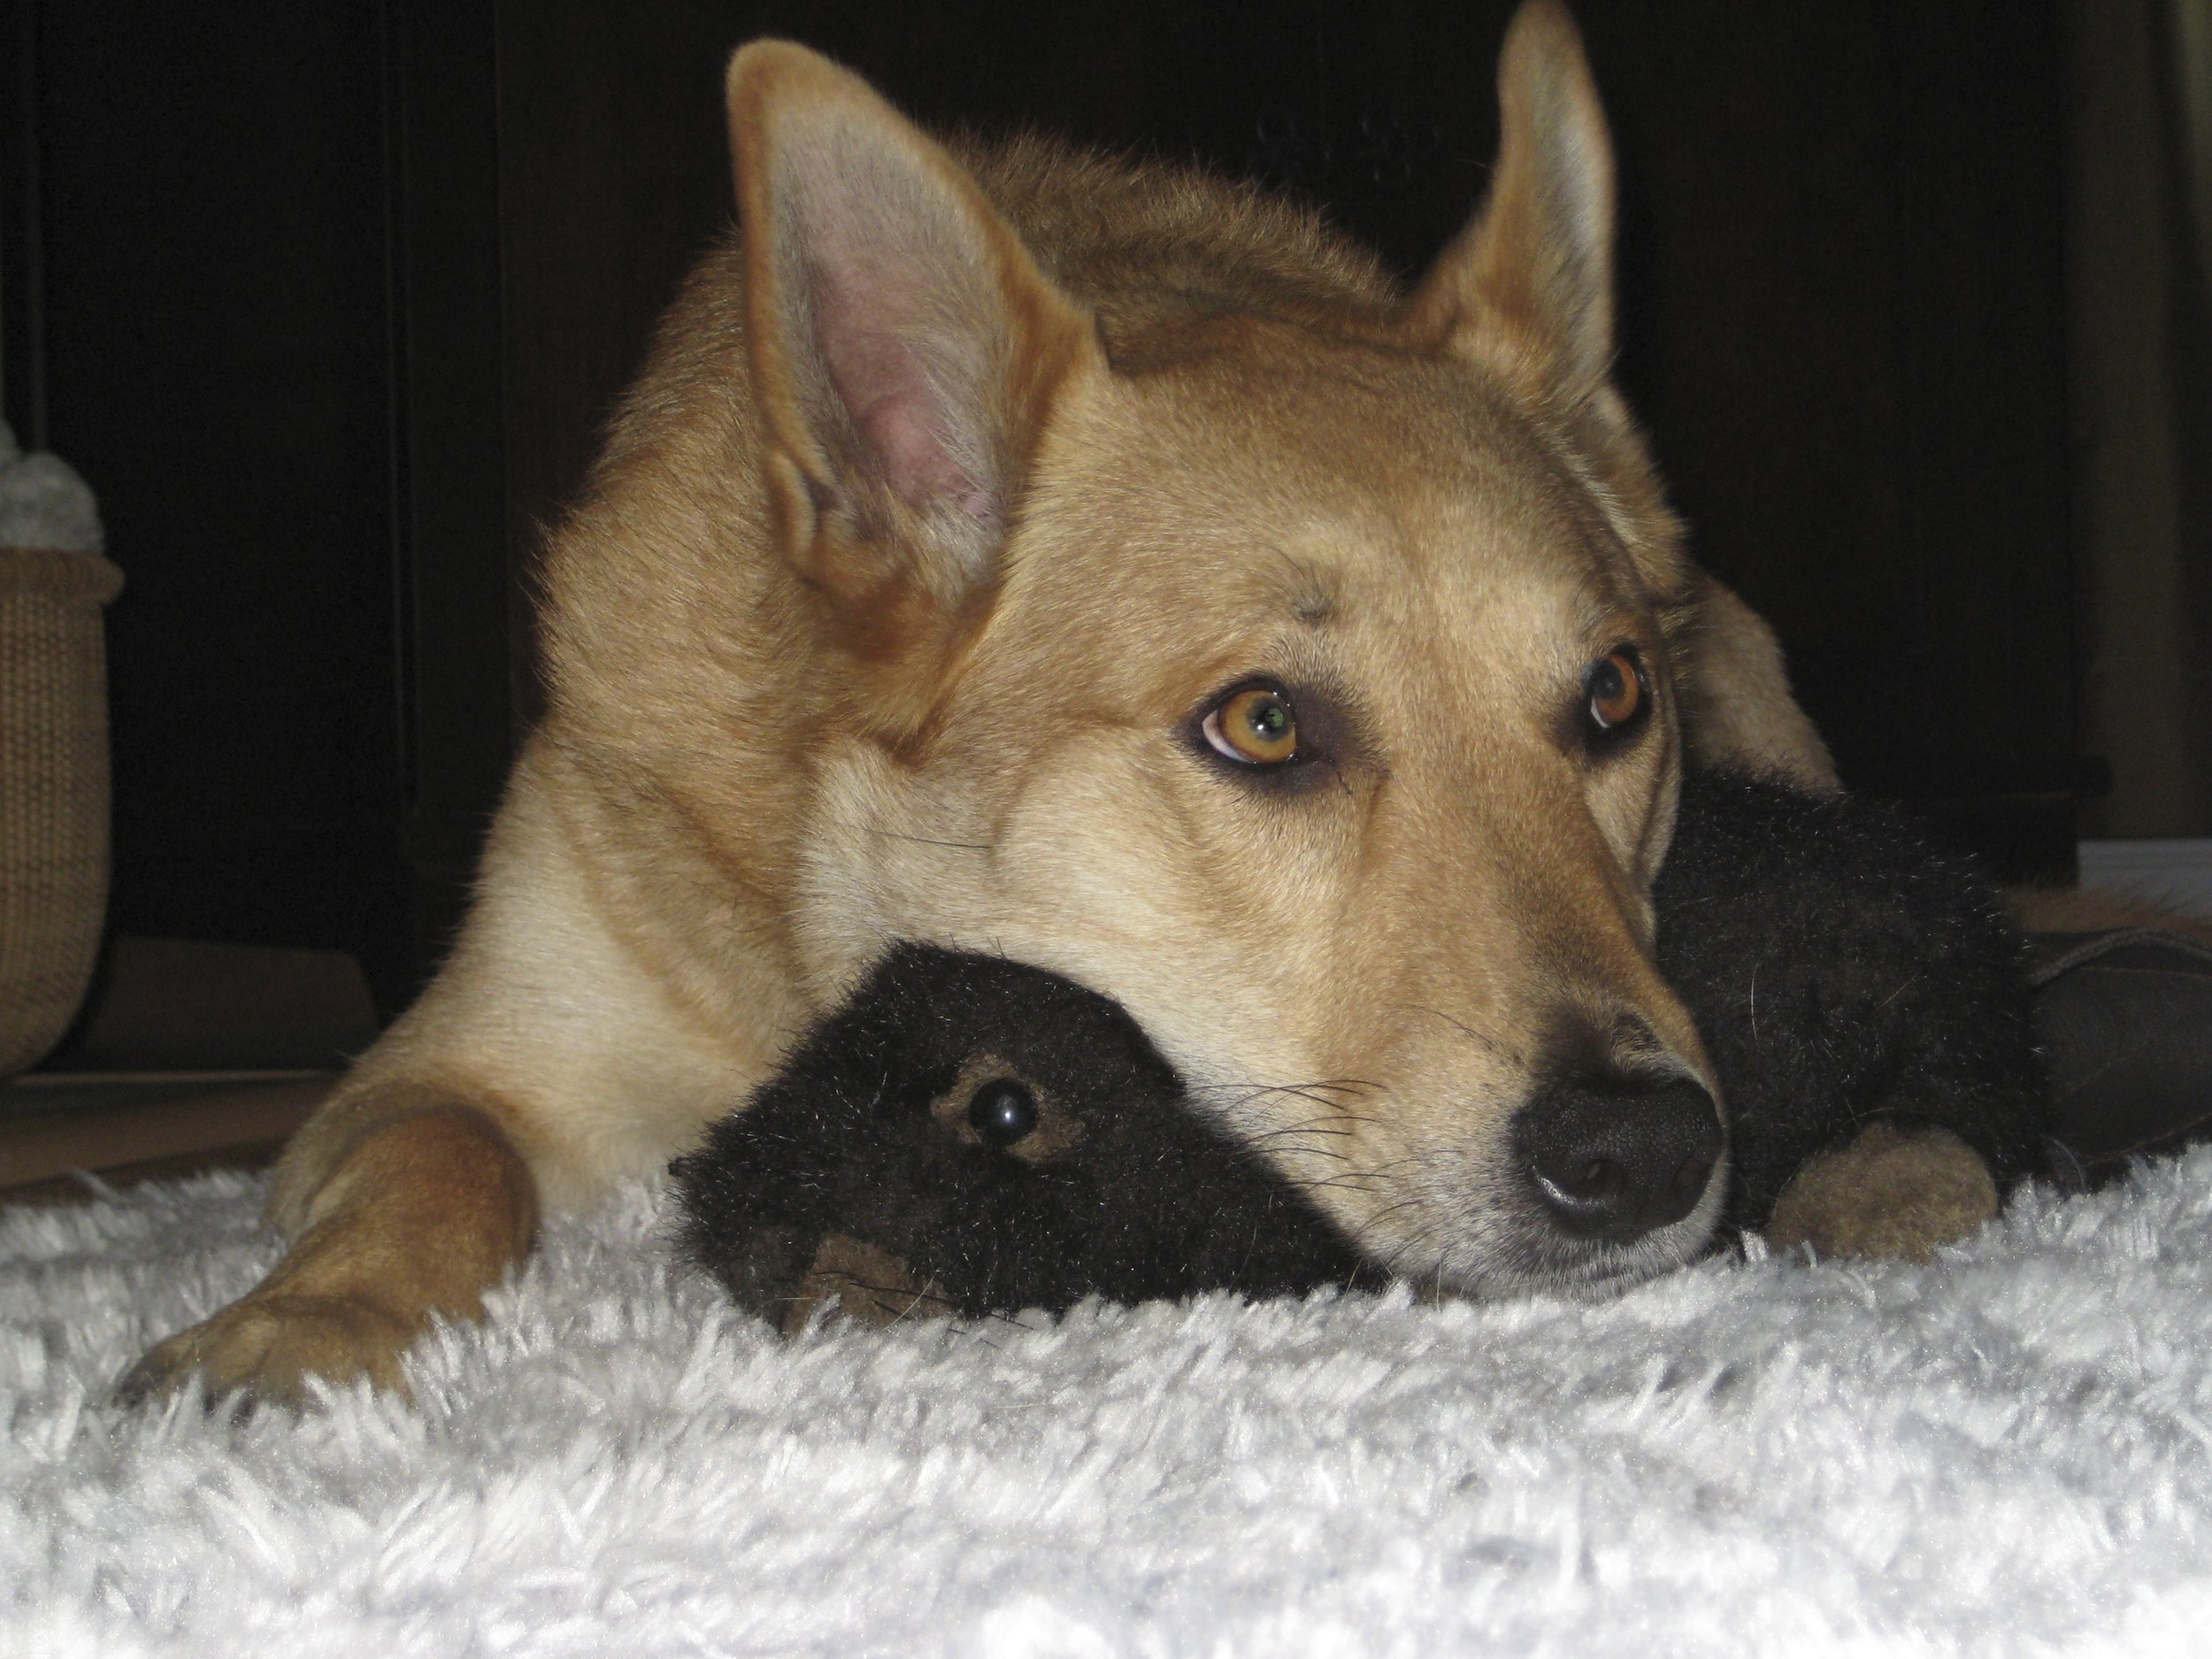 Wylie with his buddy Beaver Bud Gnawood.